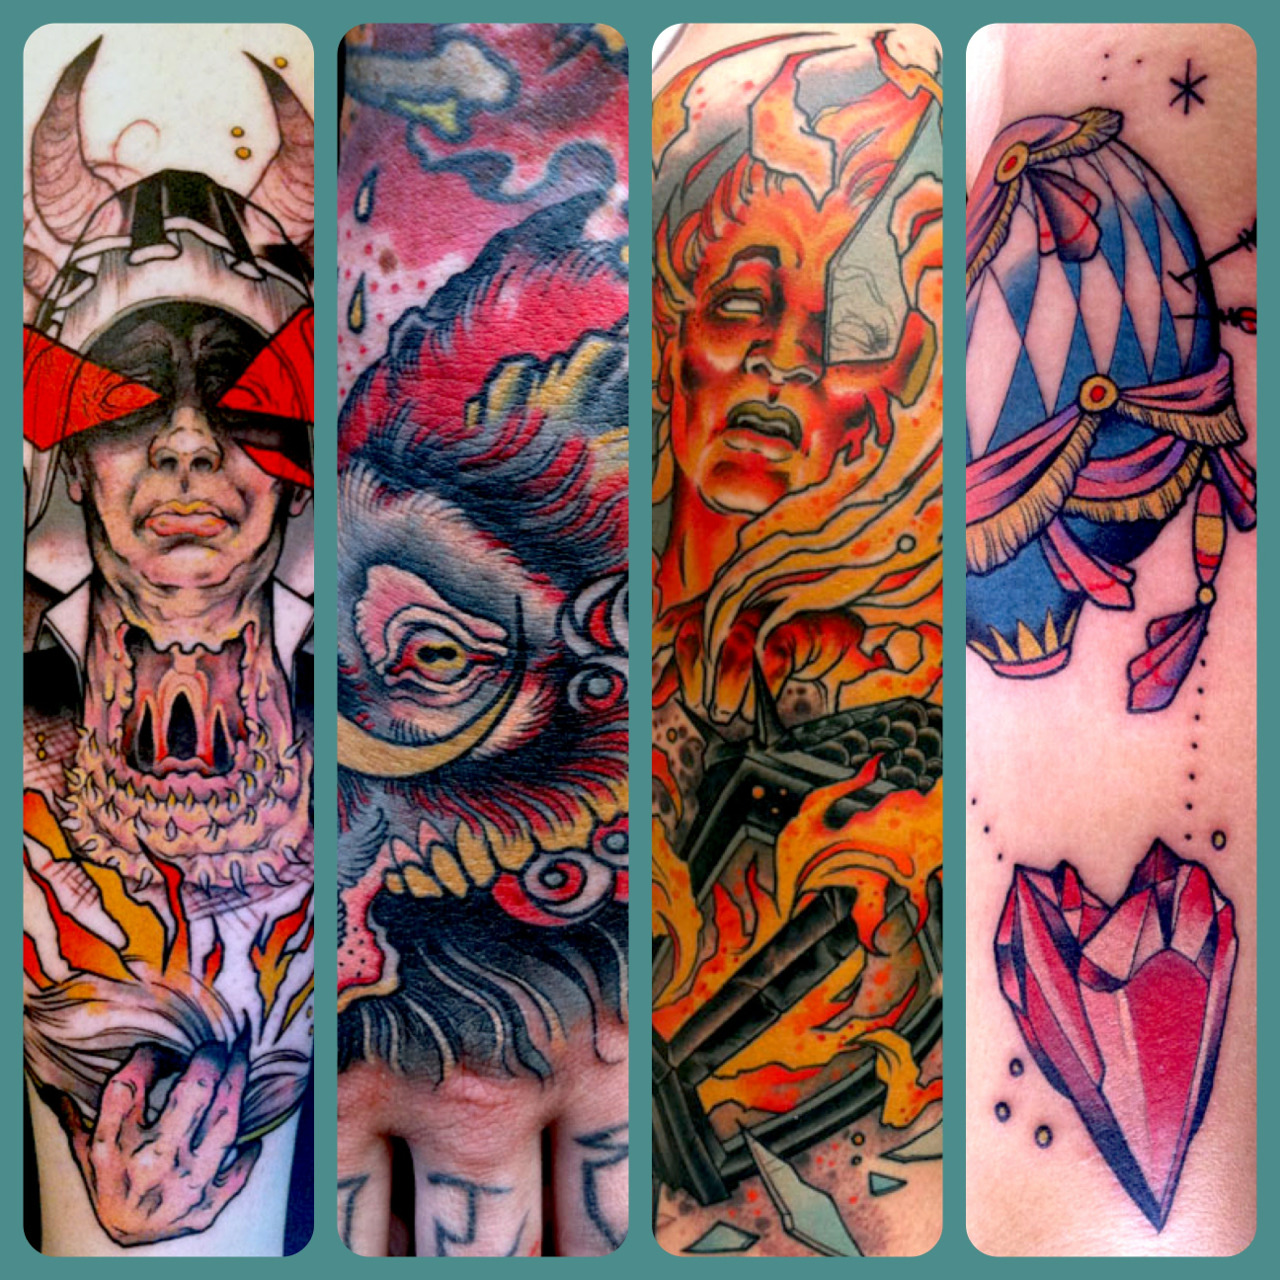 once again, it's time for hella tattoo updates!!!  http://www.thedrowntown.com